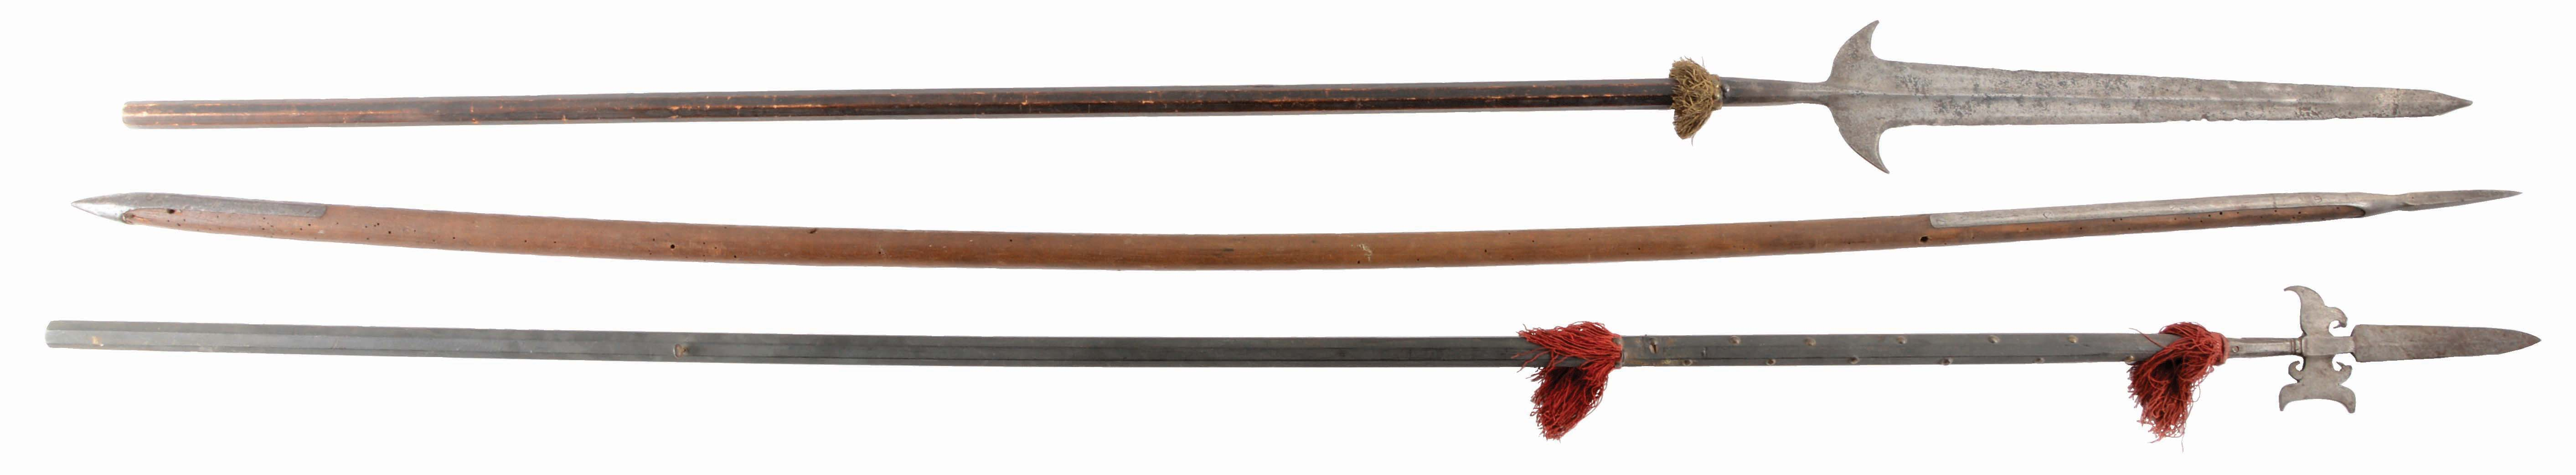 LOT OF 3: THREE ANTIQUE EUROPEAN POLEARMS INCLUDING A LATE 16TH CENTURY...